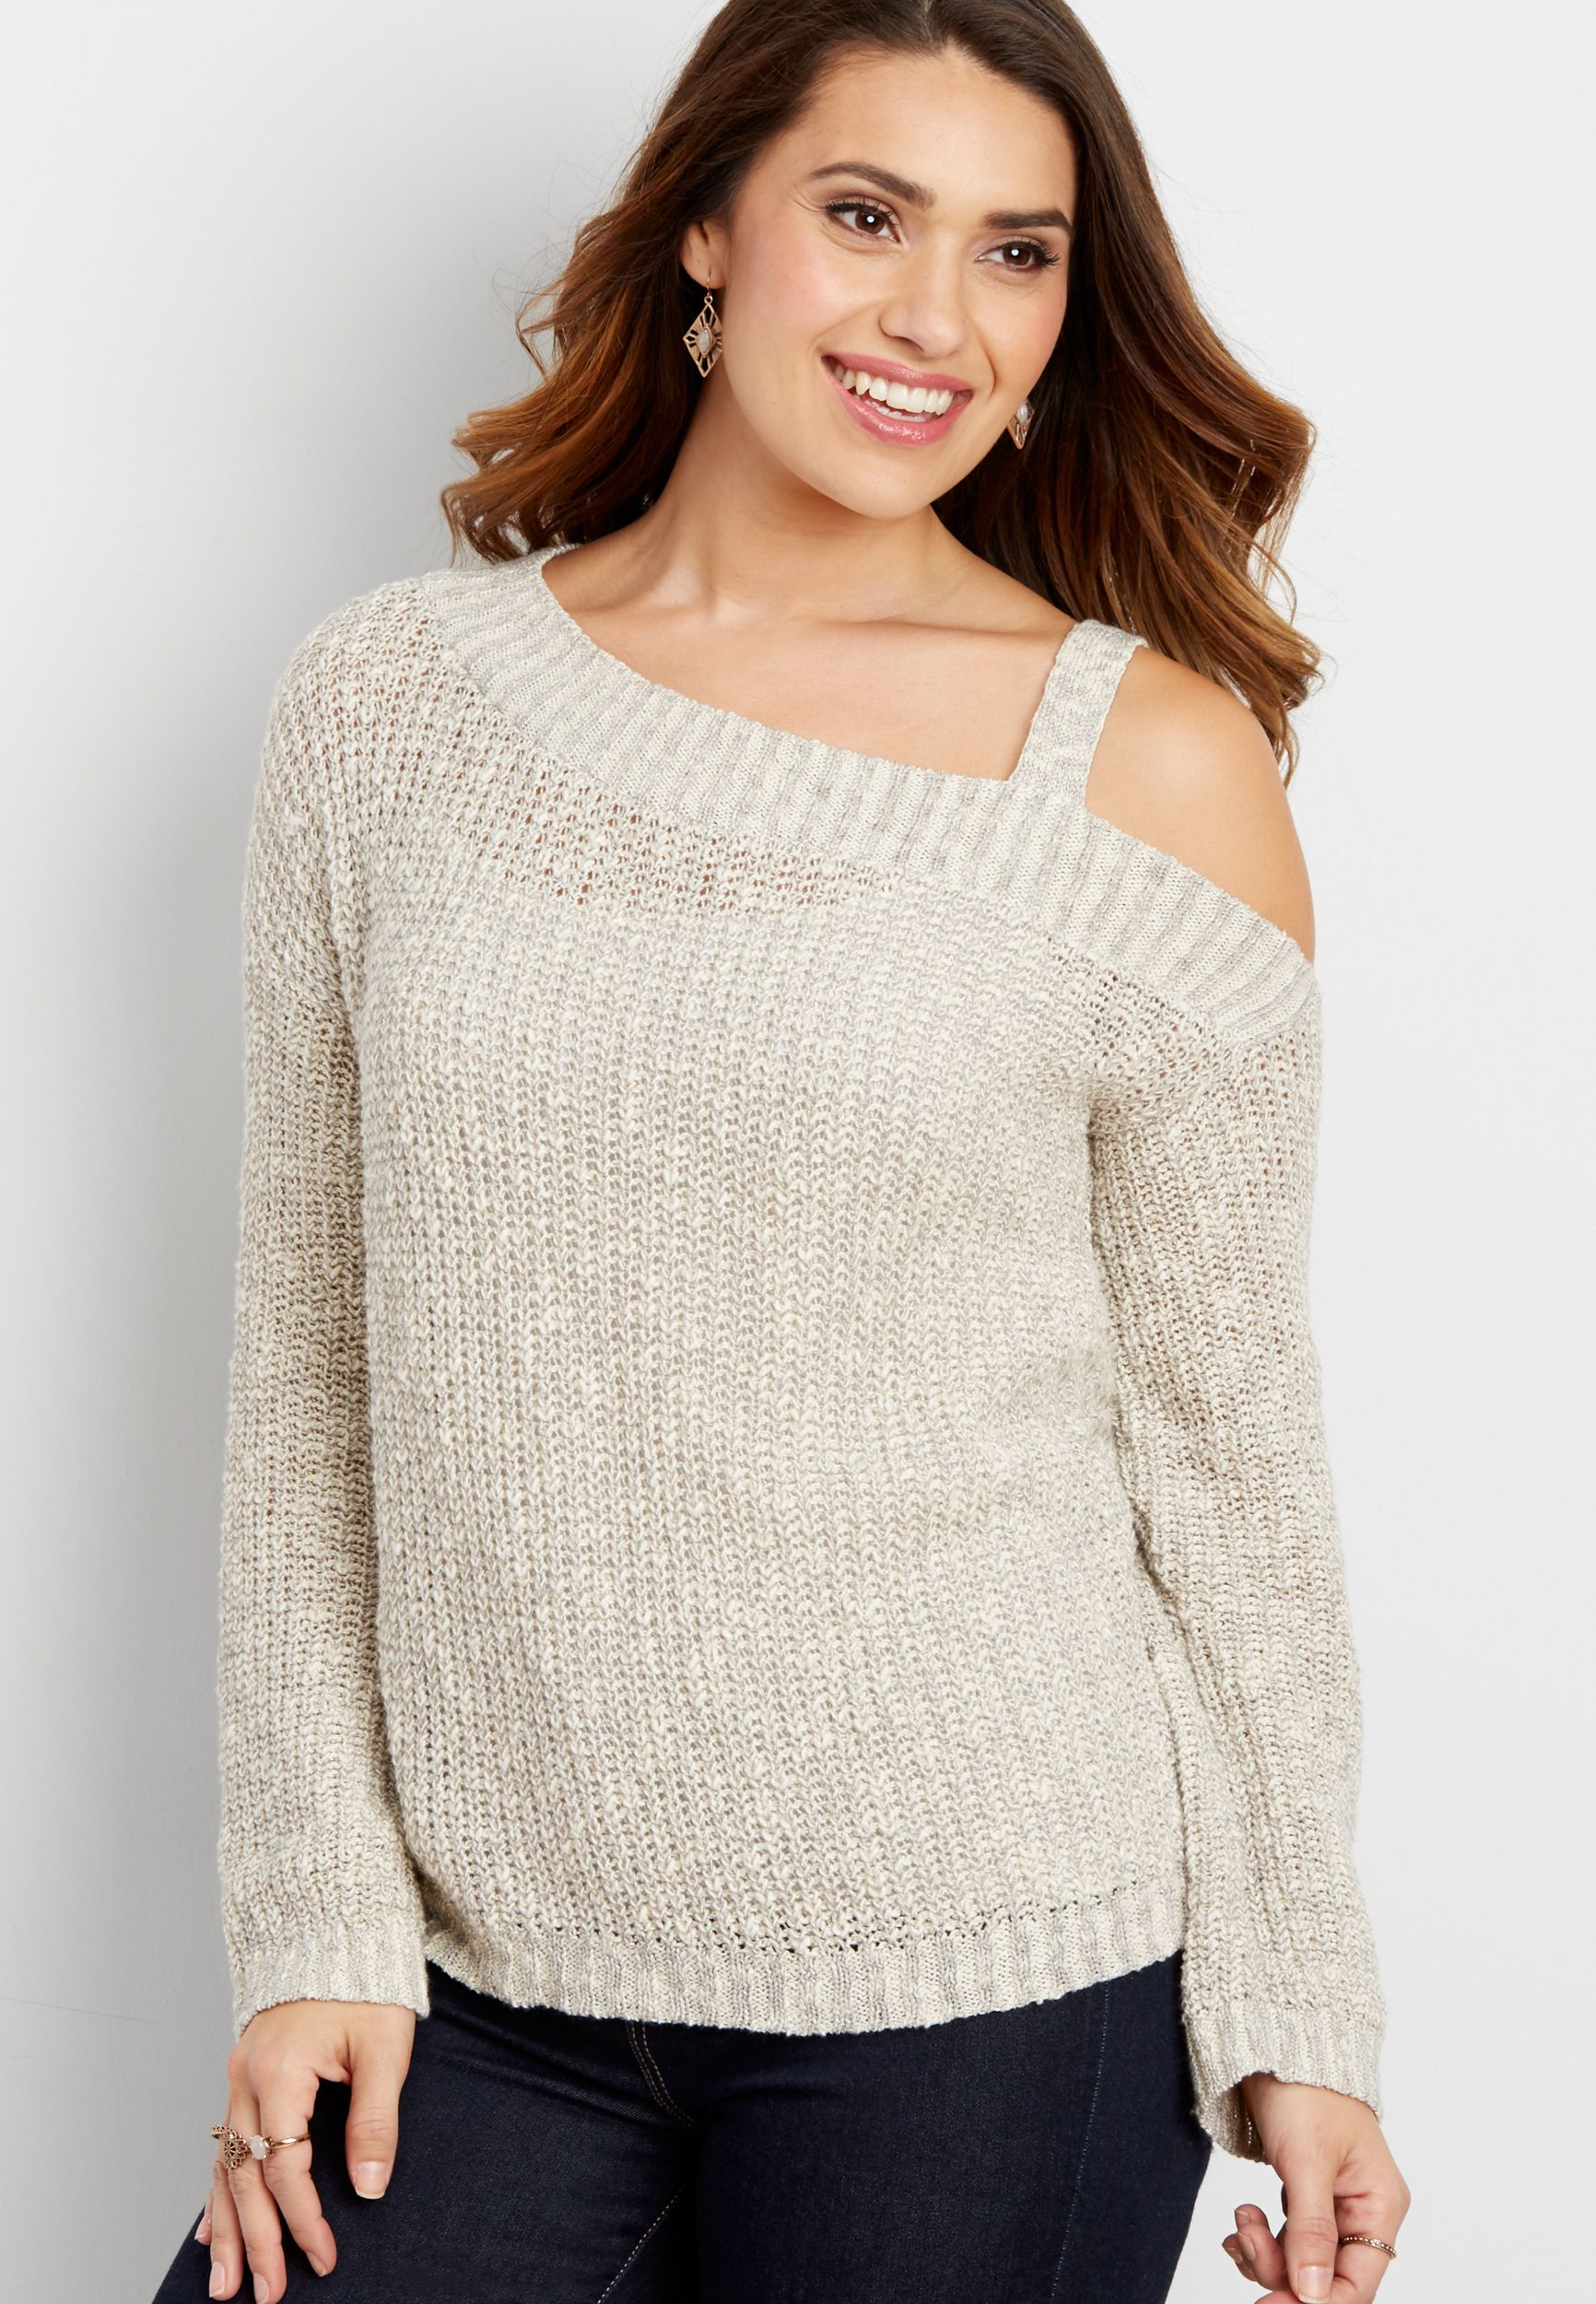 9262c57bf1c47 pullover sweater with single cold shoulder (original price